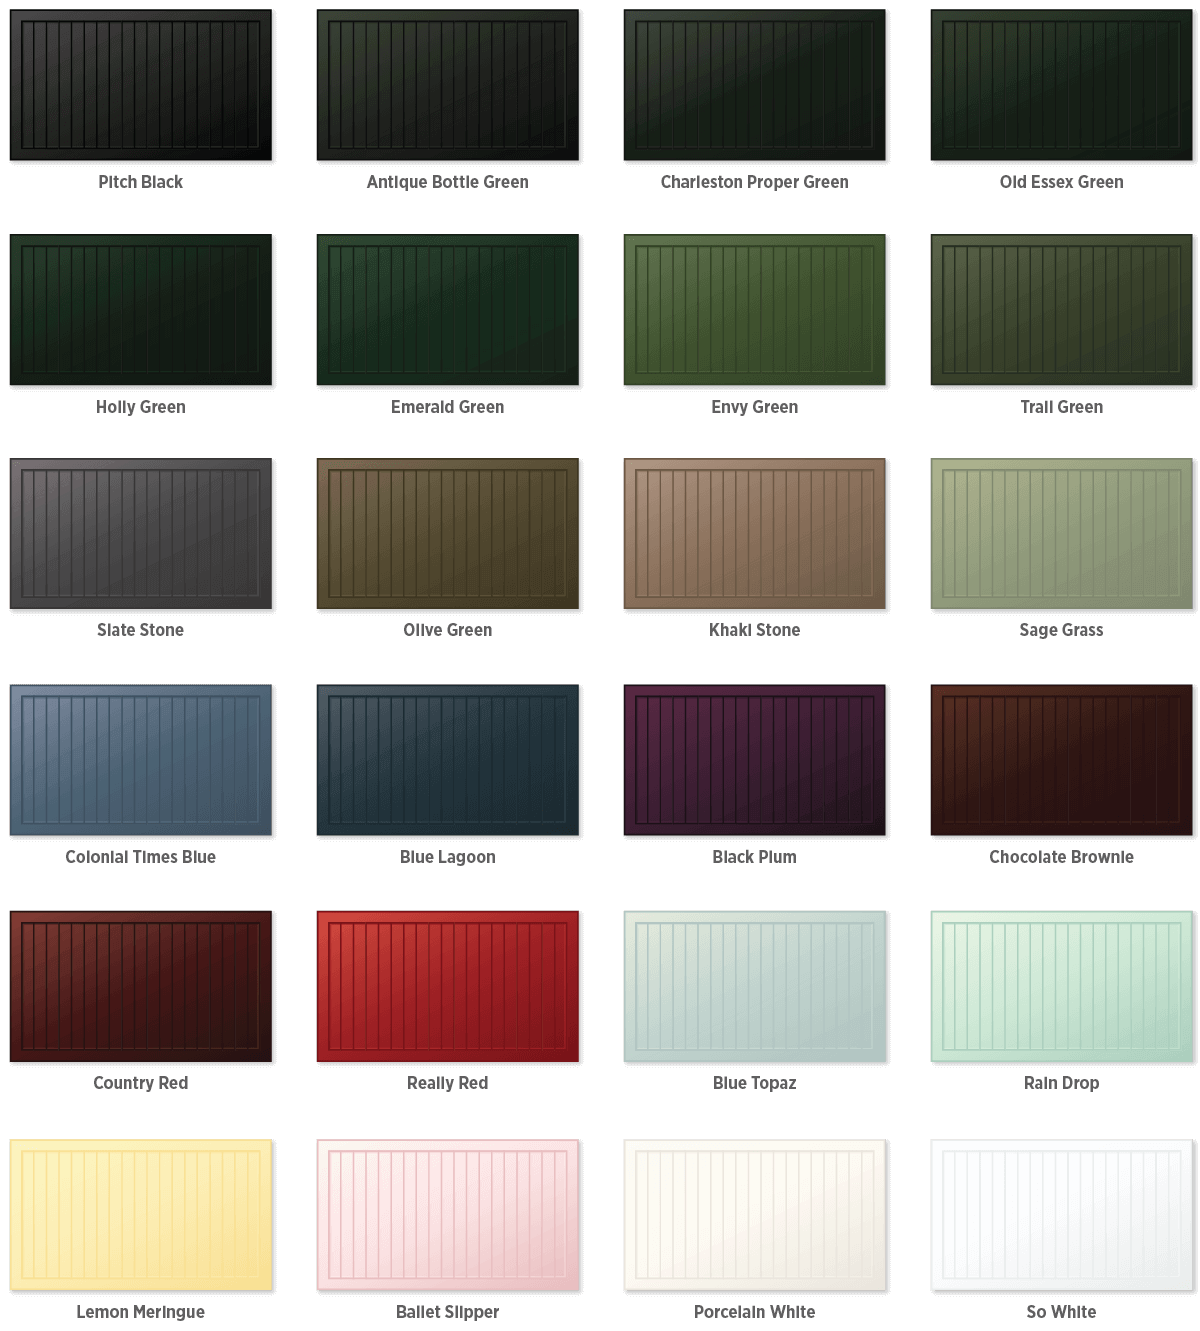 Timberlane offers 24 premium paint options that are expertly applied to our garage doors